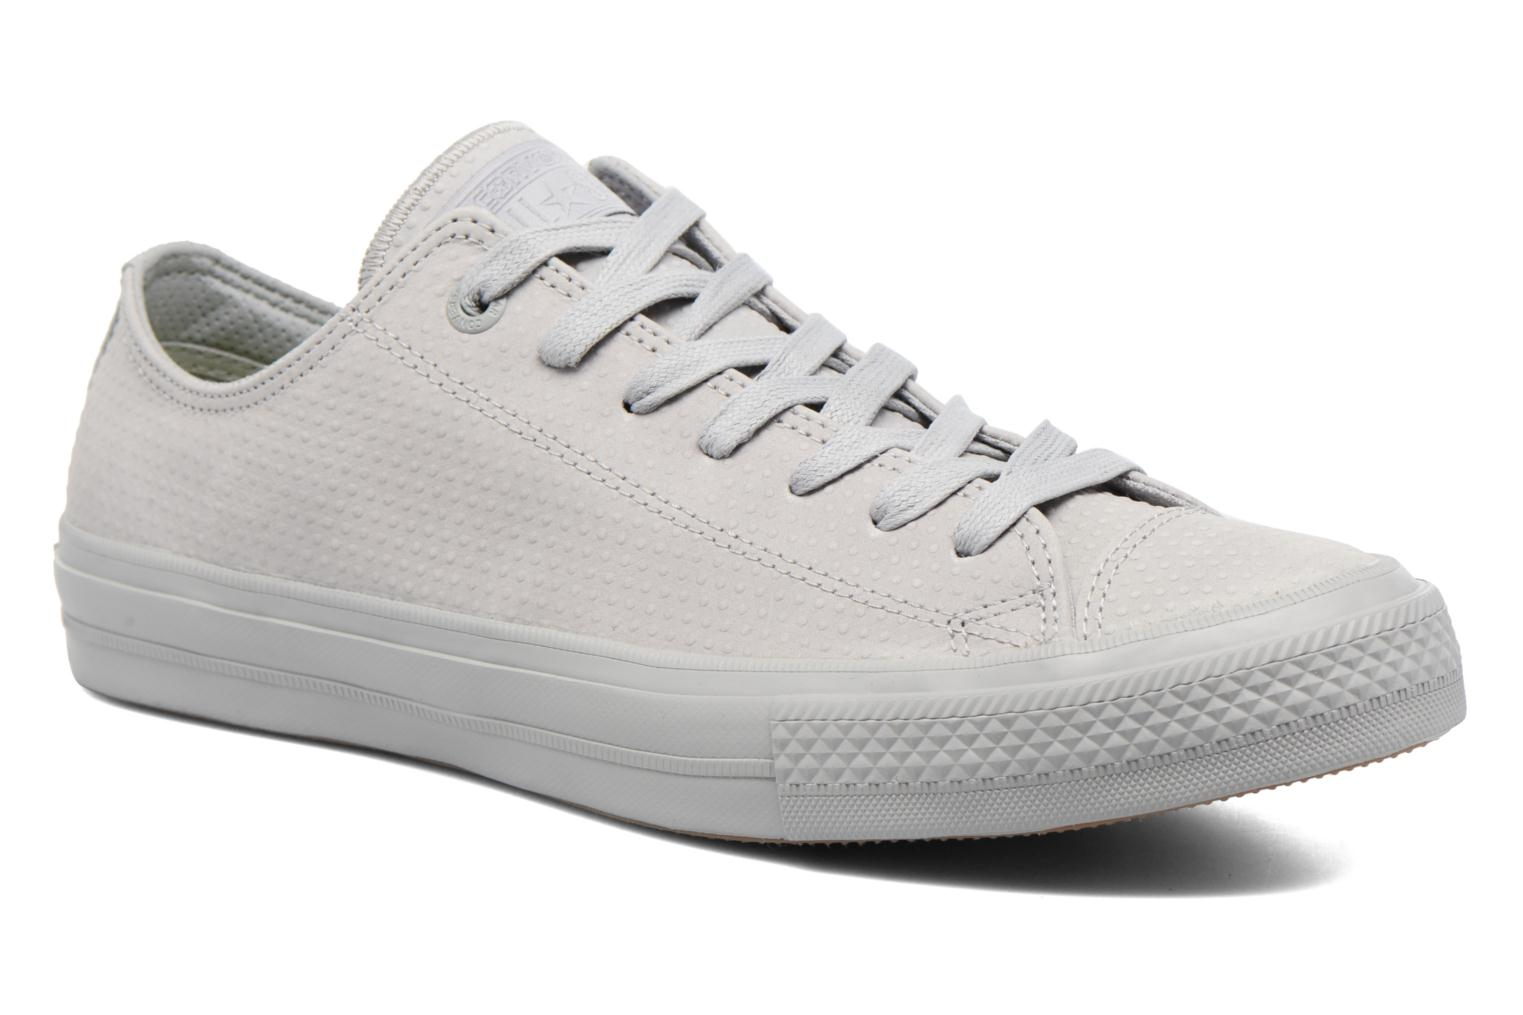 Chuck Taylor All Star II Ox Lux Leather Dolphin/Dolphin/Gum